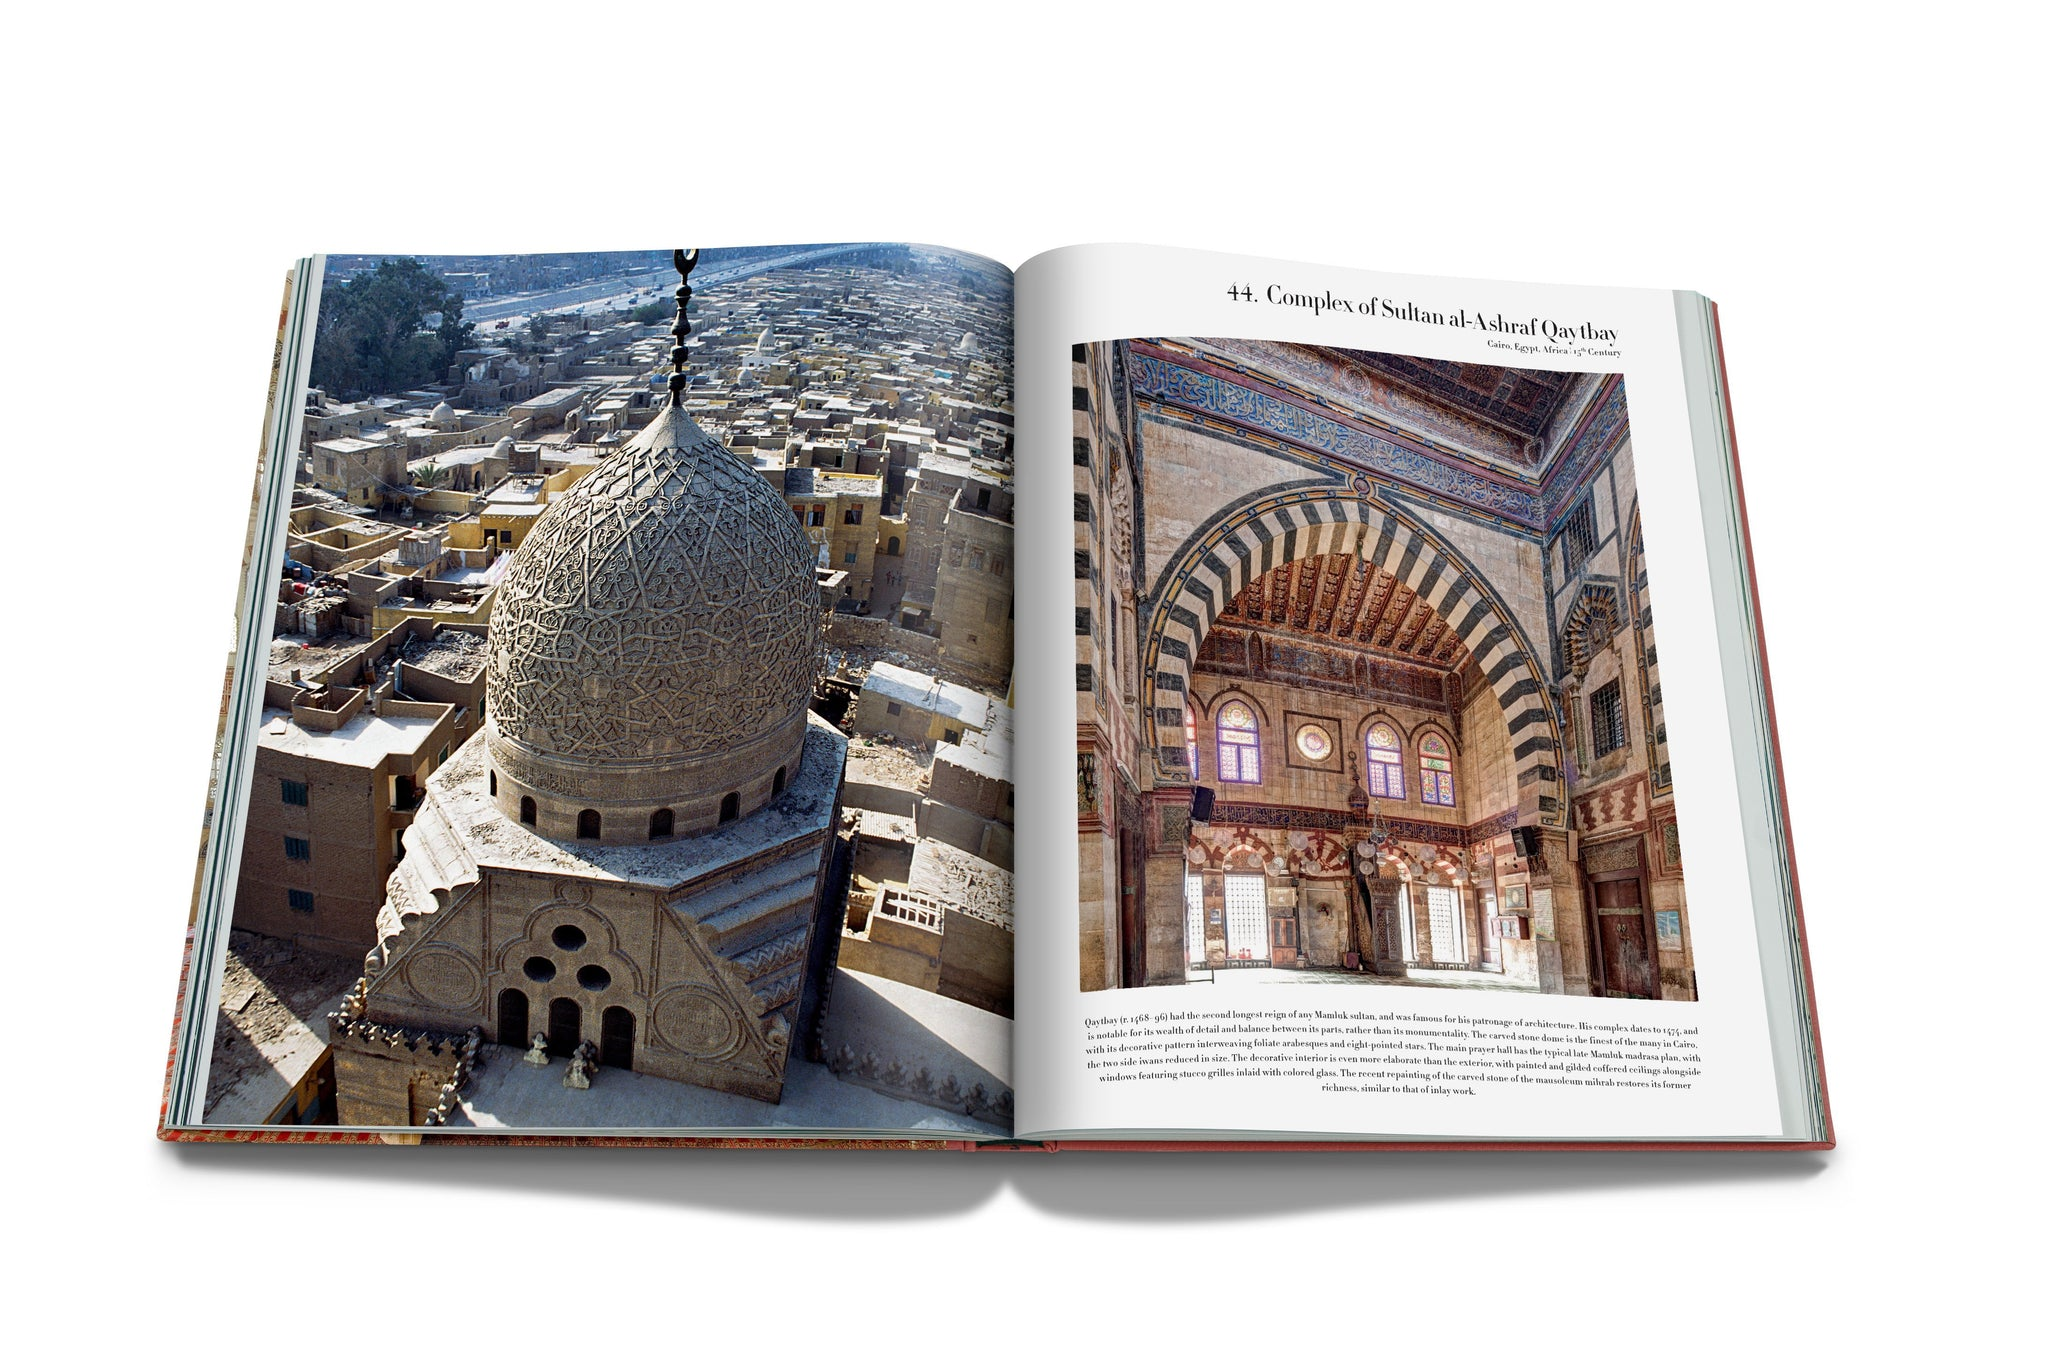 Mosques: The 100 Most Iconic Islamic Houses of Worship